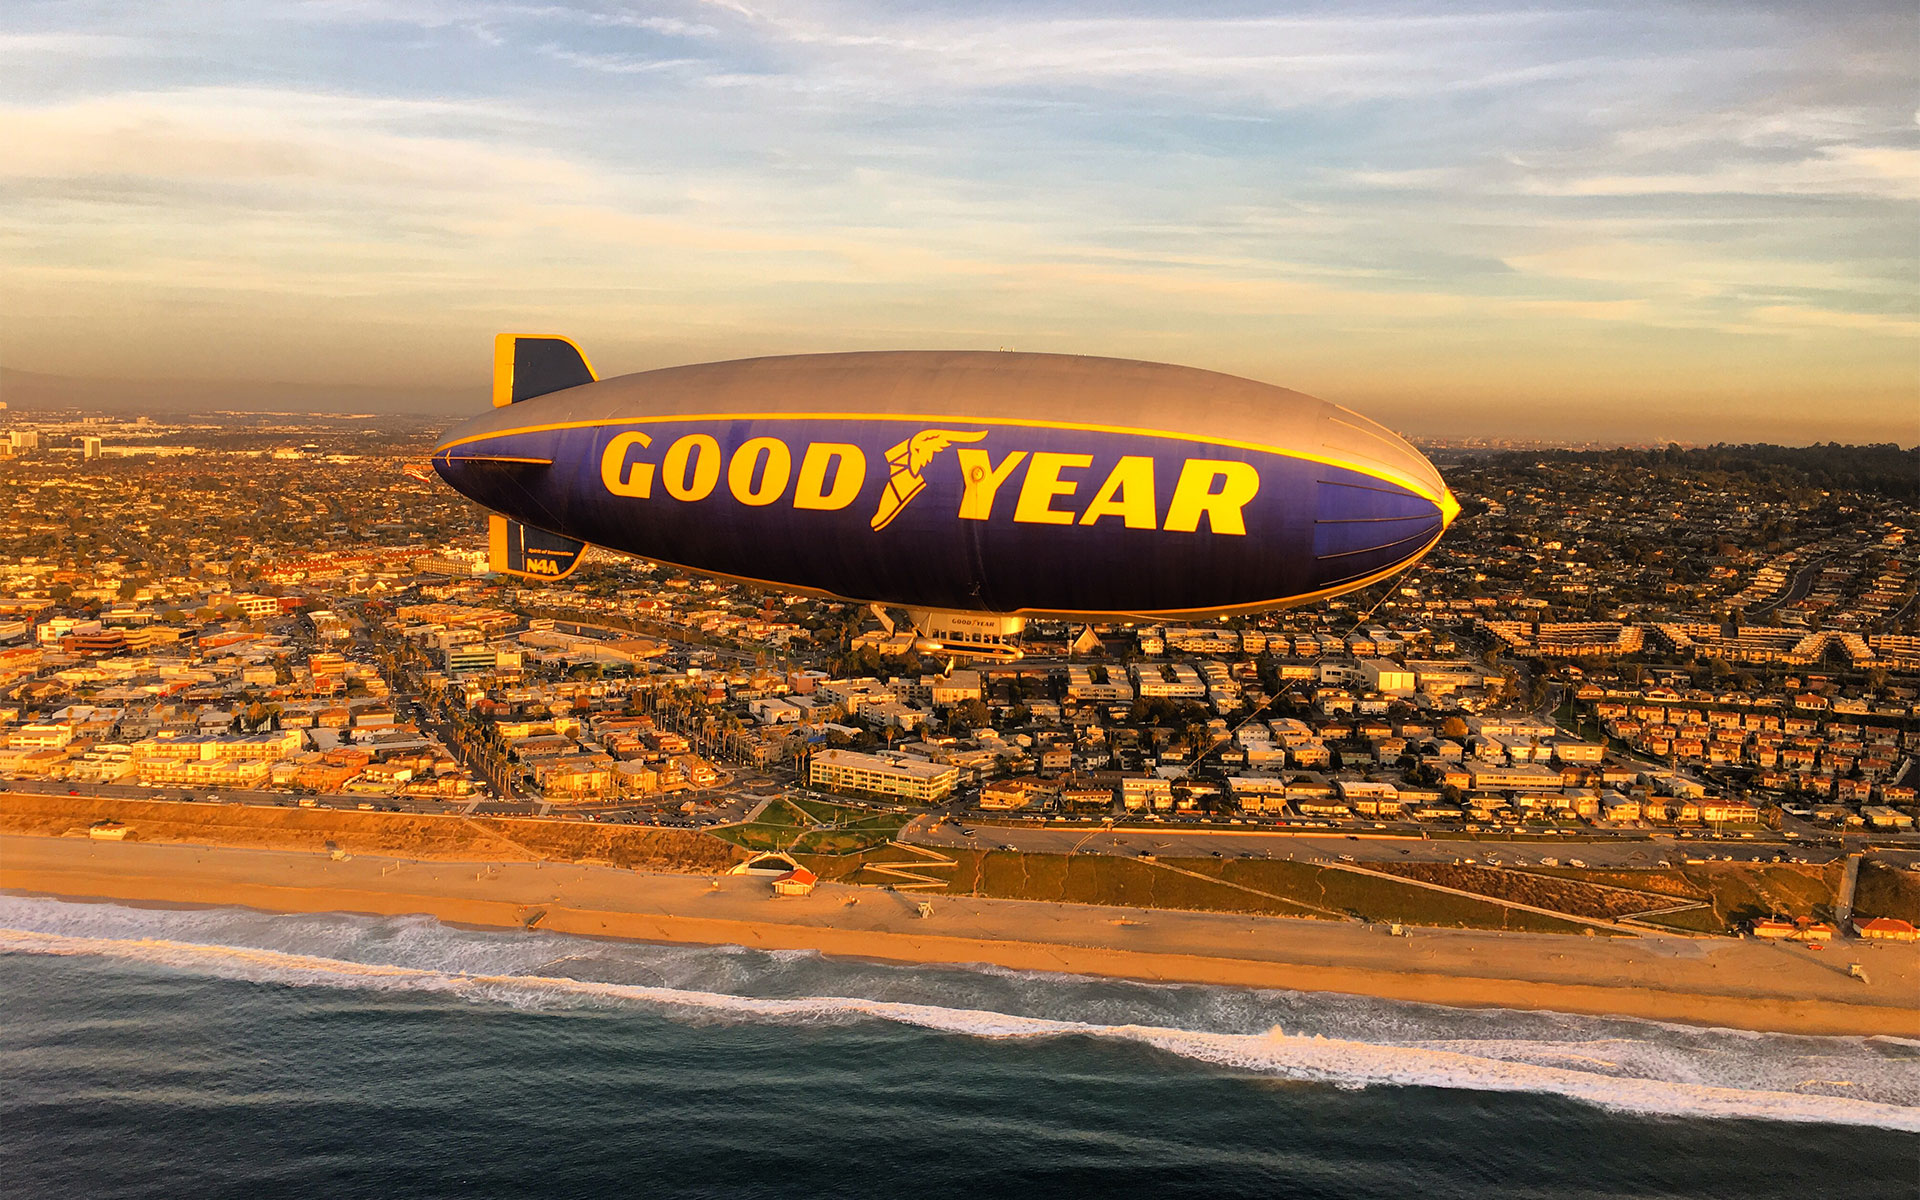 The Goodyear blimp. Los Angeles Helicopter Tours